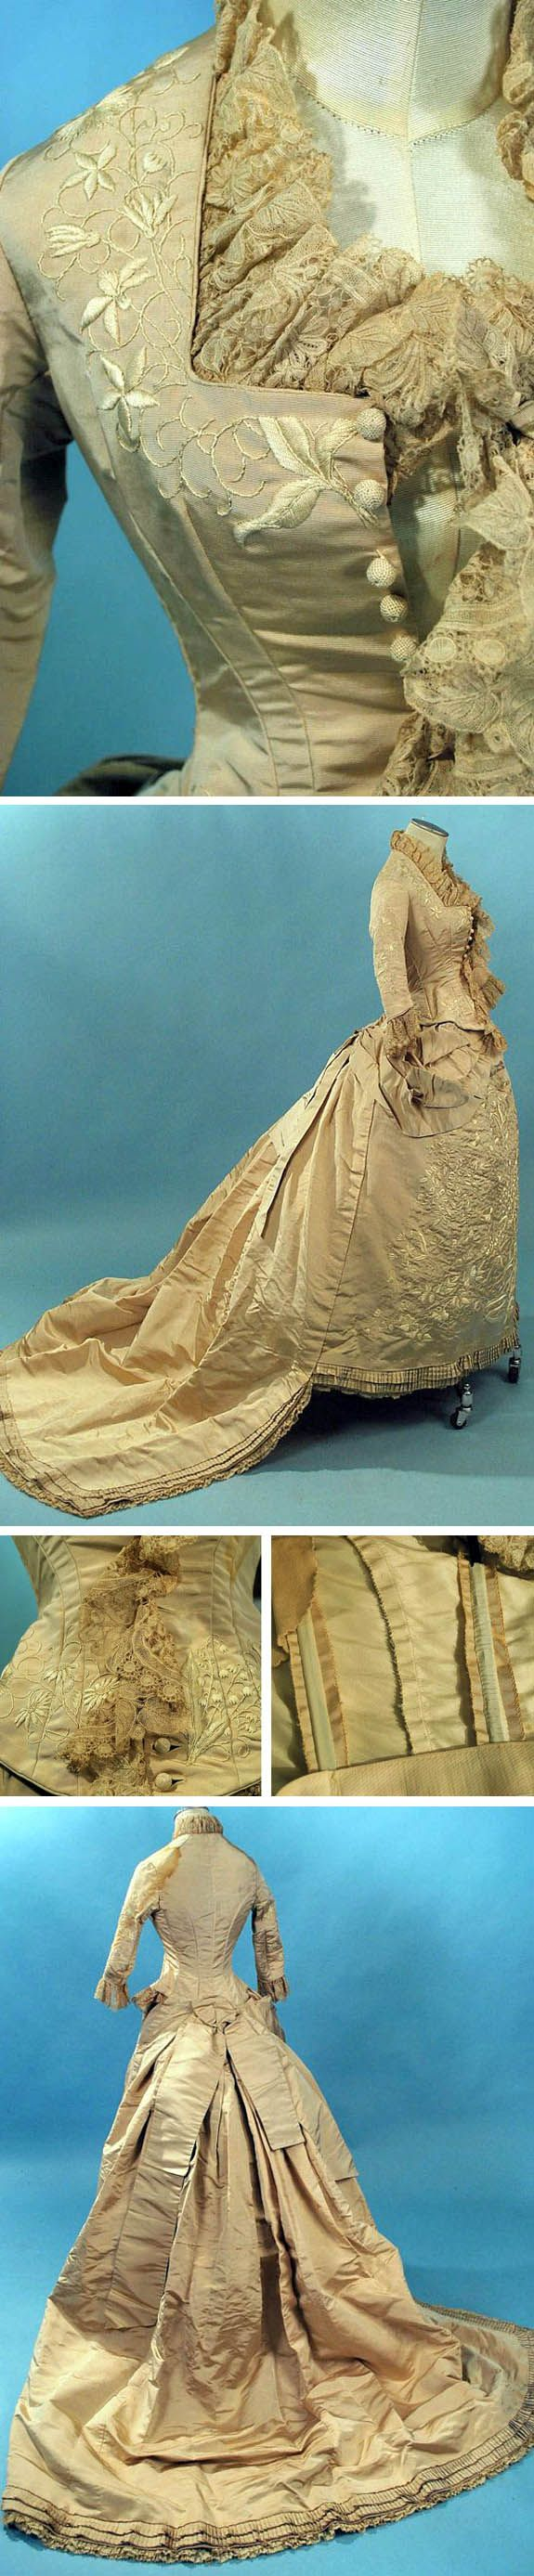 Silk faille wedding gown, circa 1870s. Embroidered front panel on skirt repeated on bodice in flowers and vines. Square neckline on stayed bodice with hand Brussels lace trim and crochet ball buttons. One-piece dress with waistband closing in back. Draped and gathered detailing with swags and box pleats in back and train. Lined in netting with dust ruffle interior hem. via Extant Gowns.